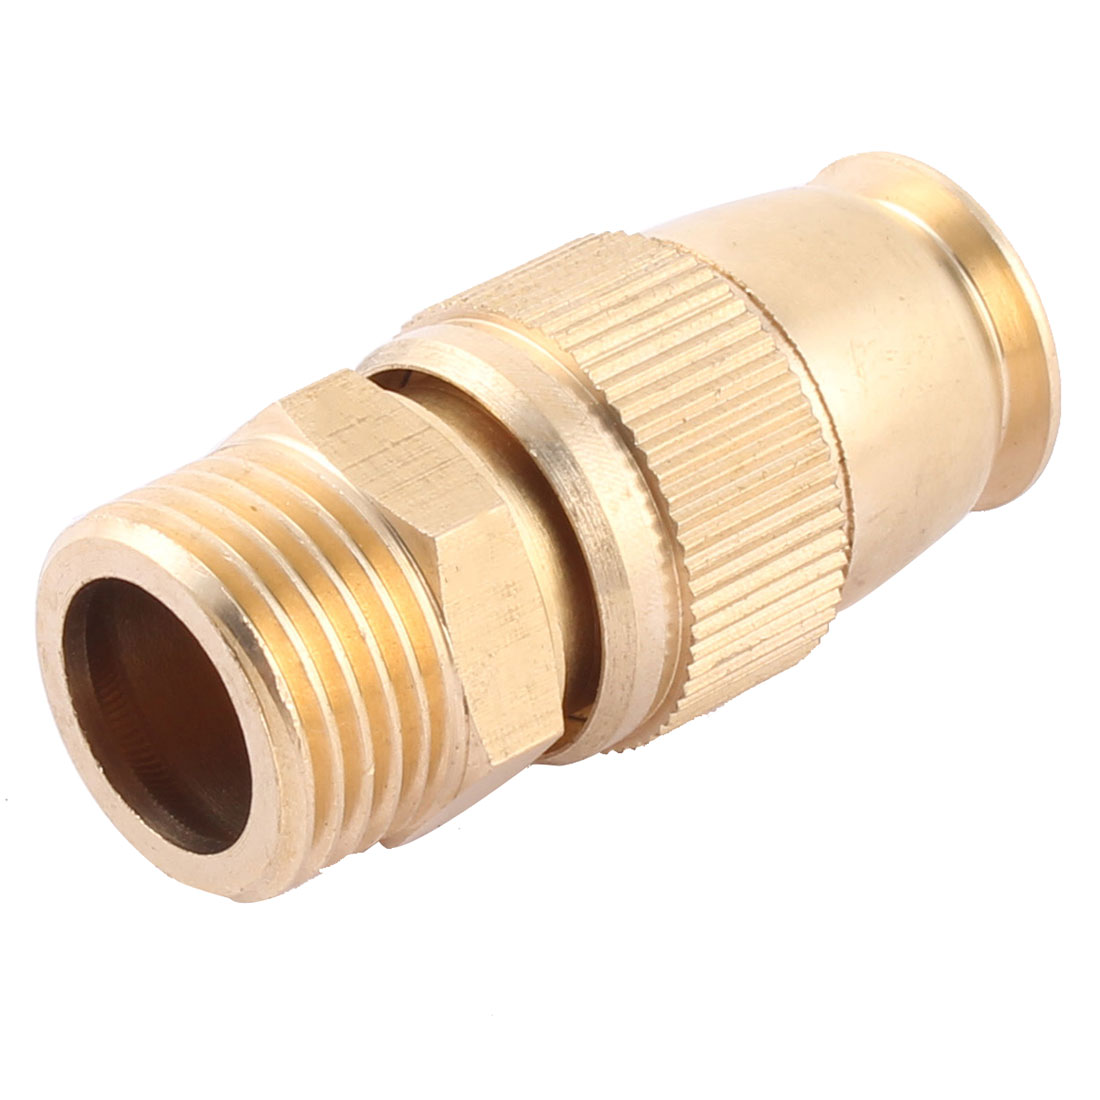 Garden Lawn Brass Adjustable Nozzle Hose Connector Gold Tone